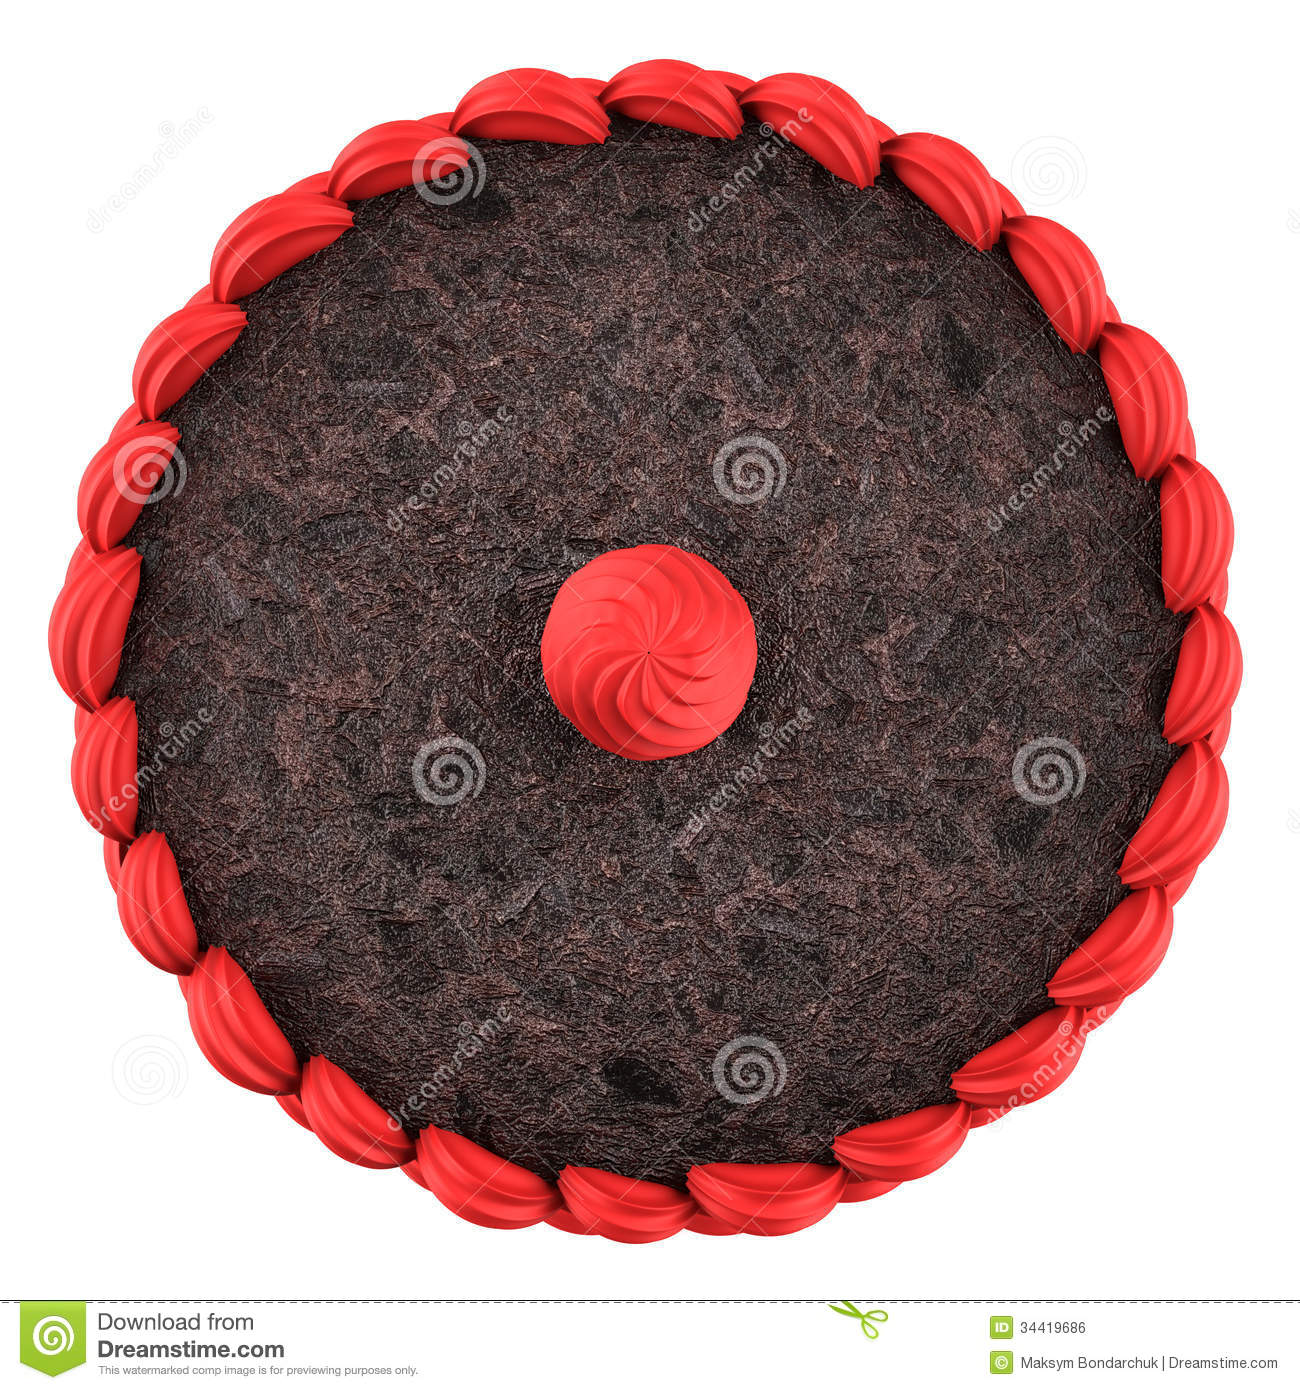 Cake Images Top View : Top View Of Round Chocolate Cake With Pink Cream Isolated ...